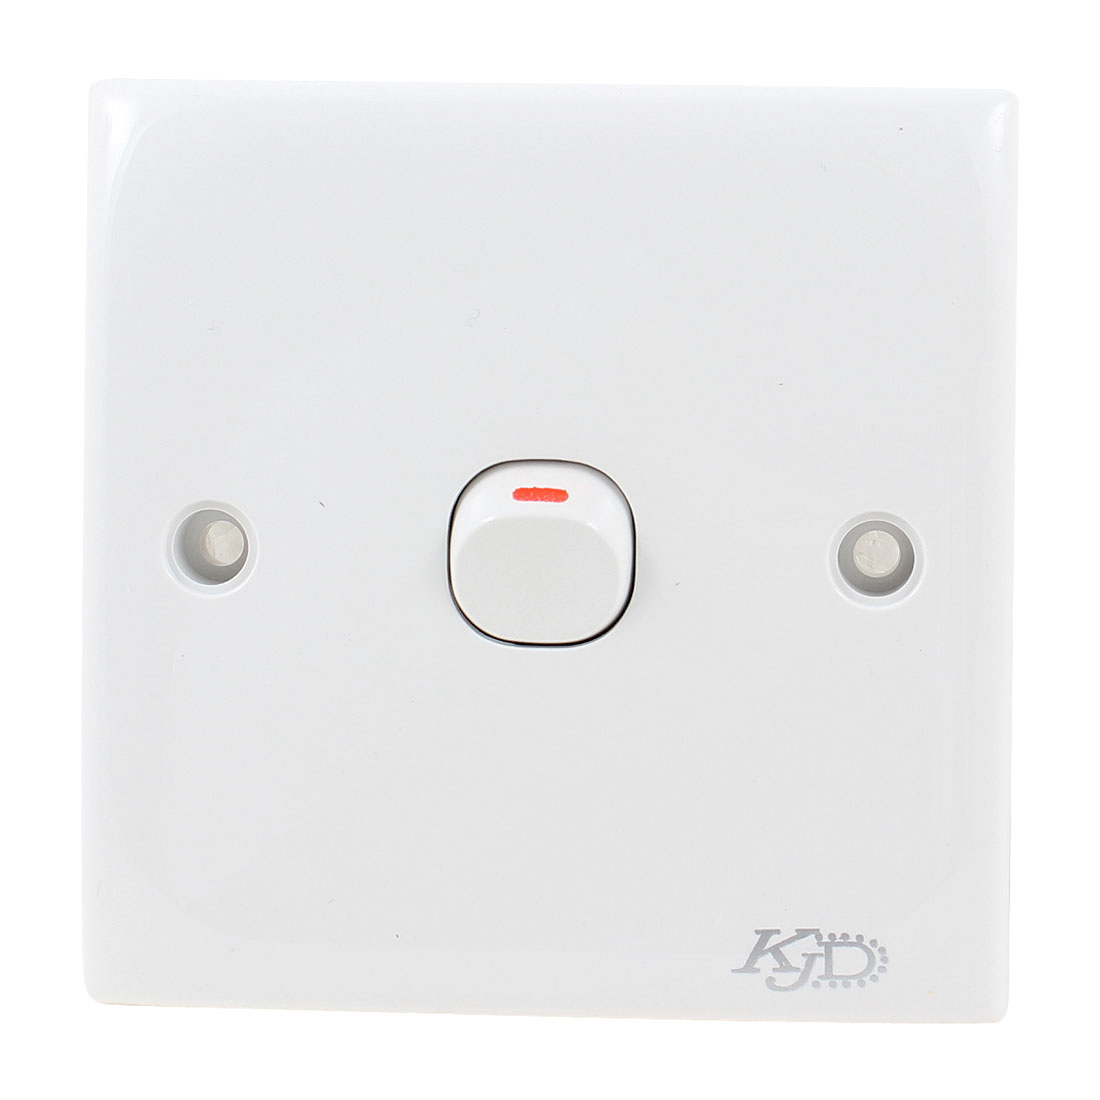 Household Wall Mounted Single Gang Light Control Switch Plate AC 250V 10A